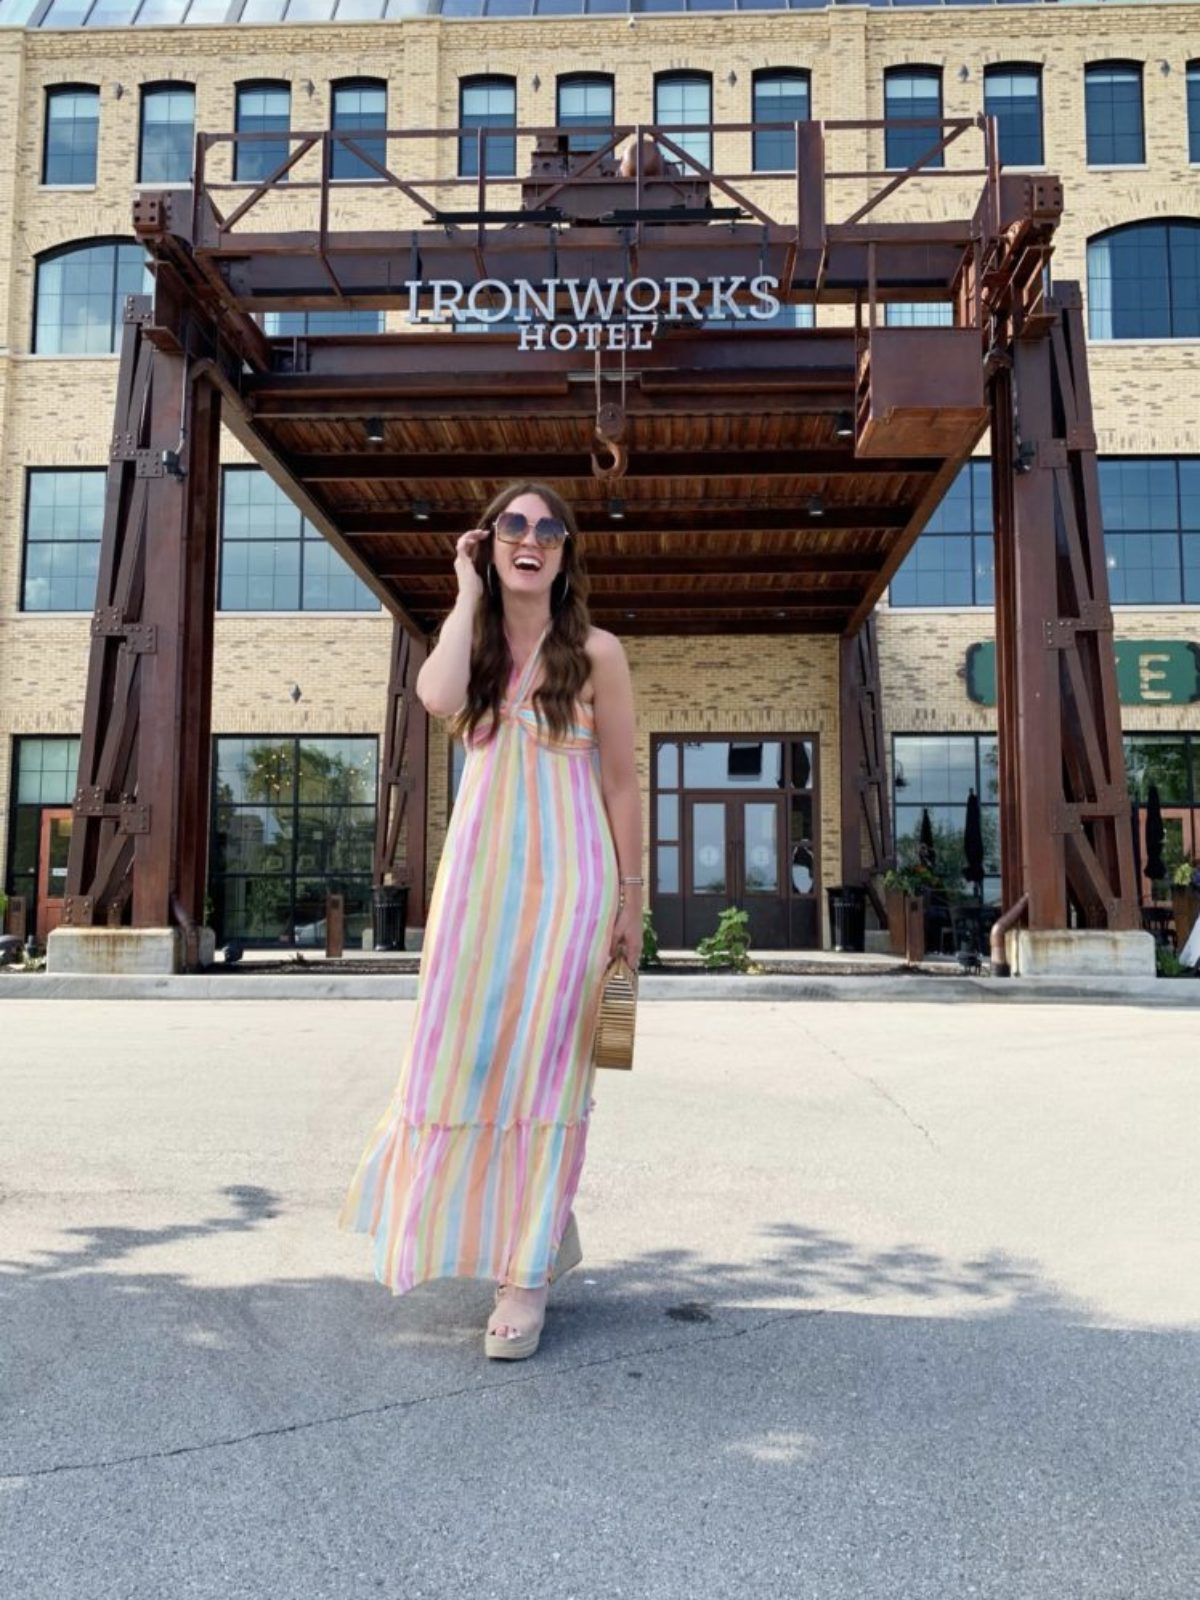 Ironworks Hotel Indy review